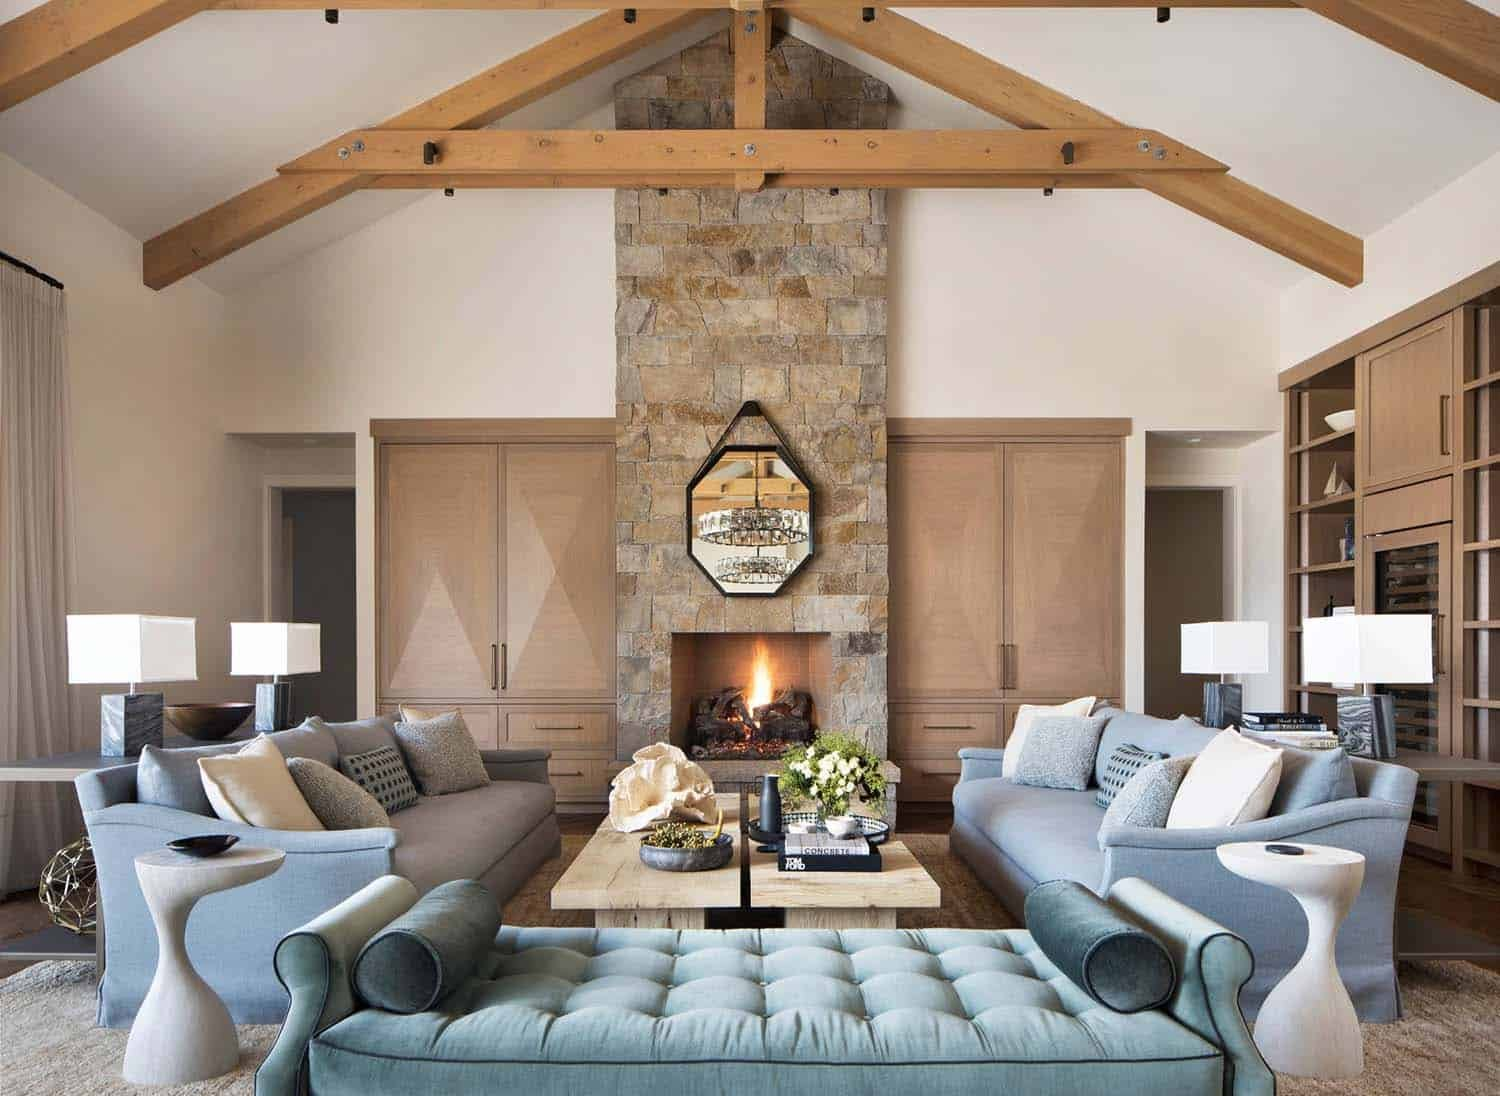 Beautiful rustic glam living room with rich textures